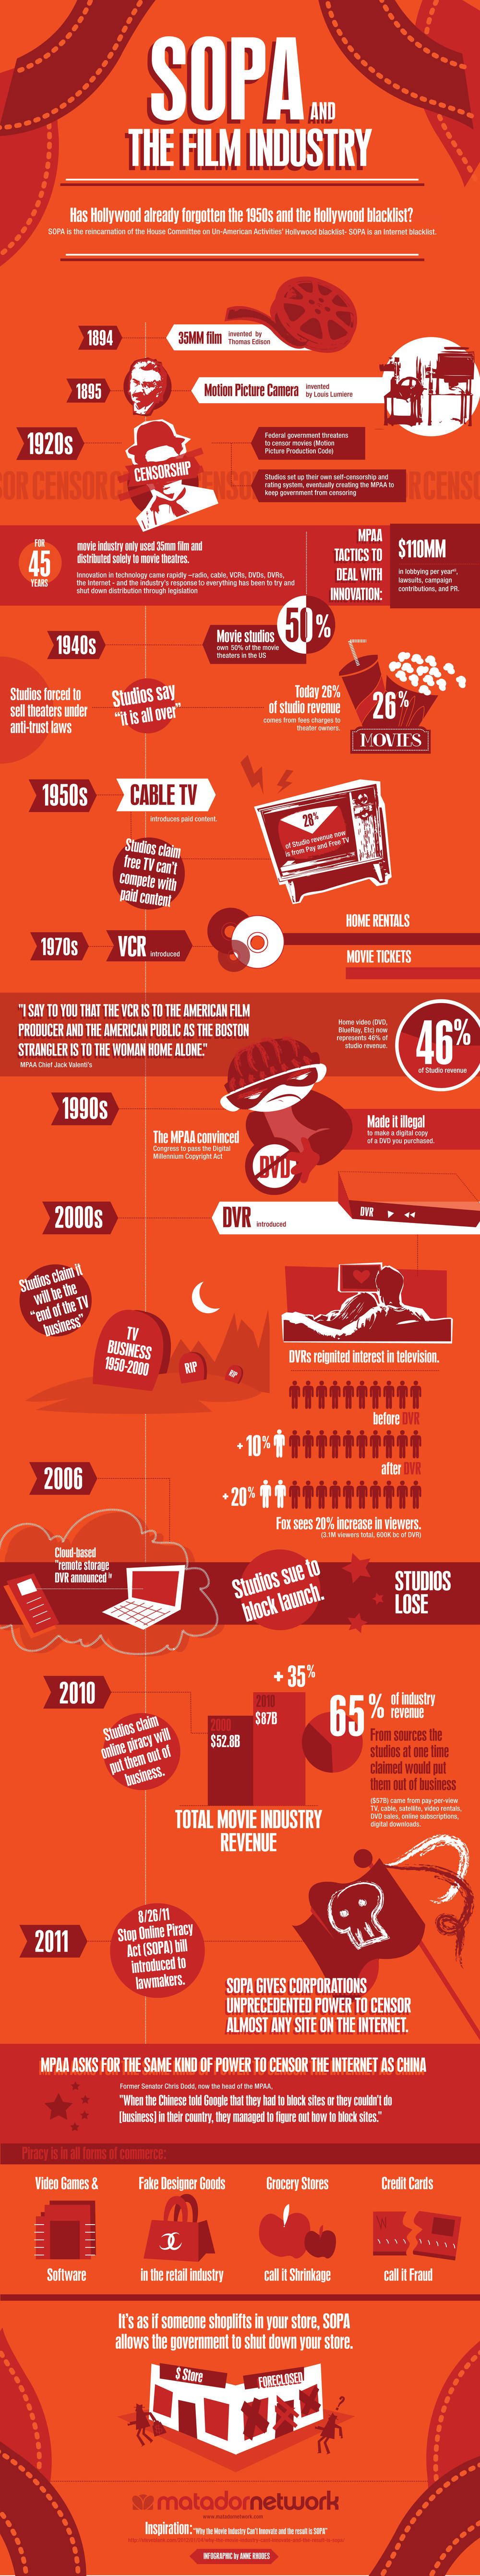 Infographic: SOPA and Hollywood